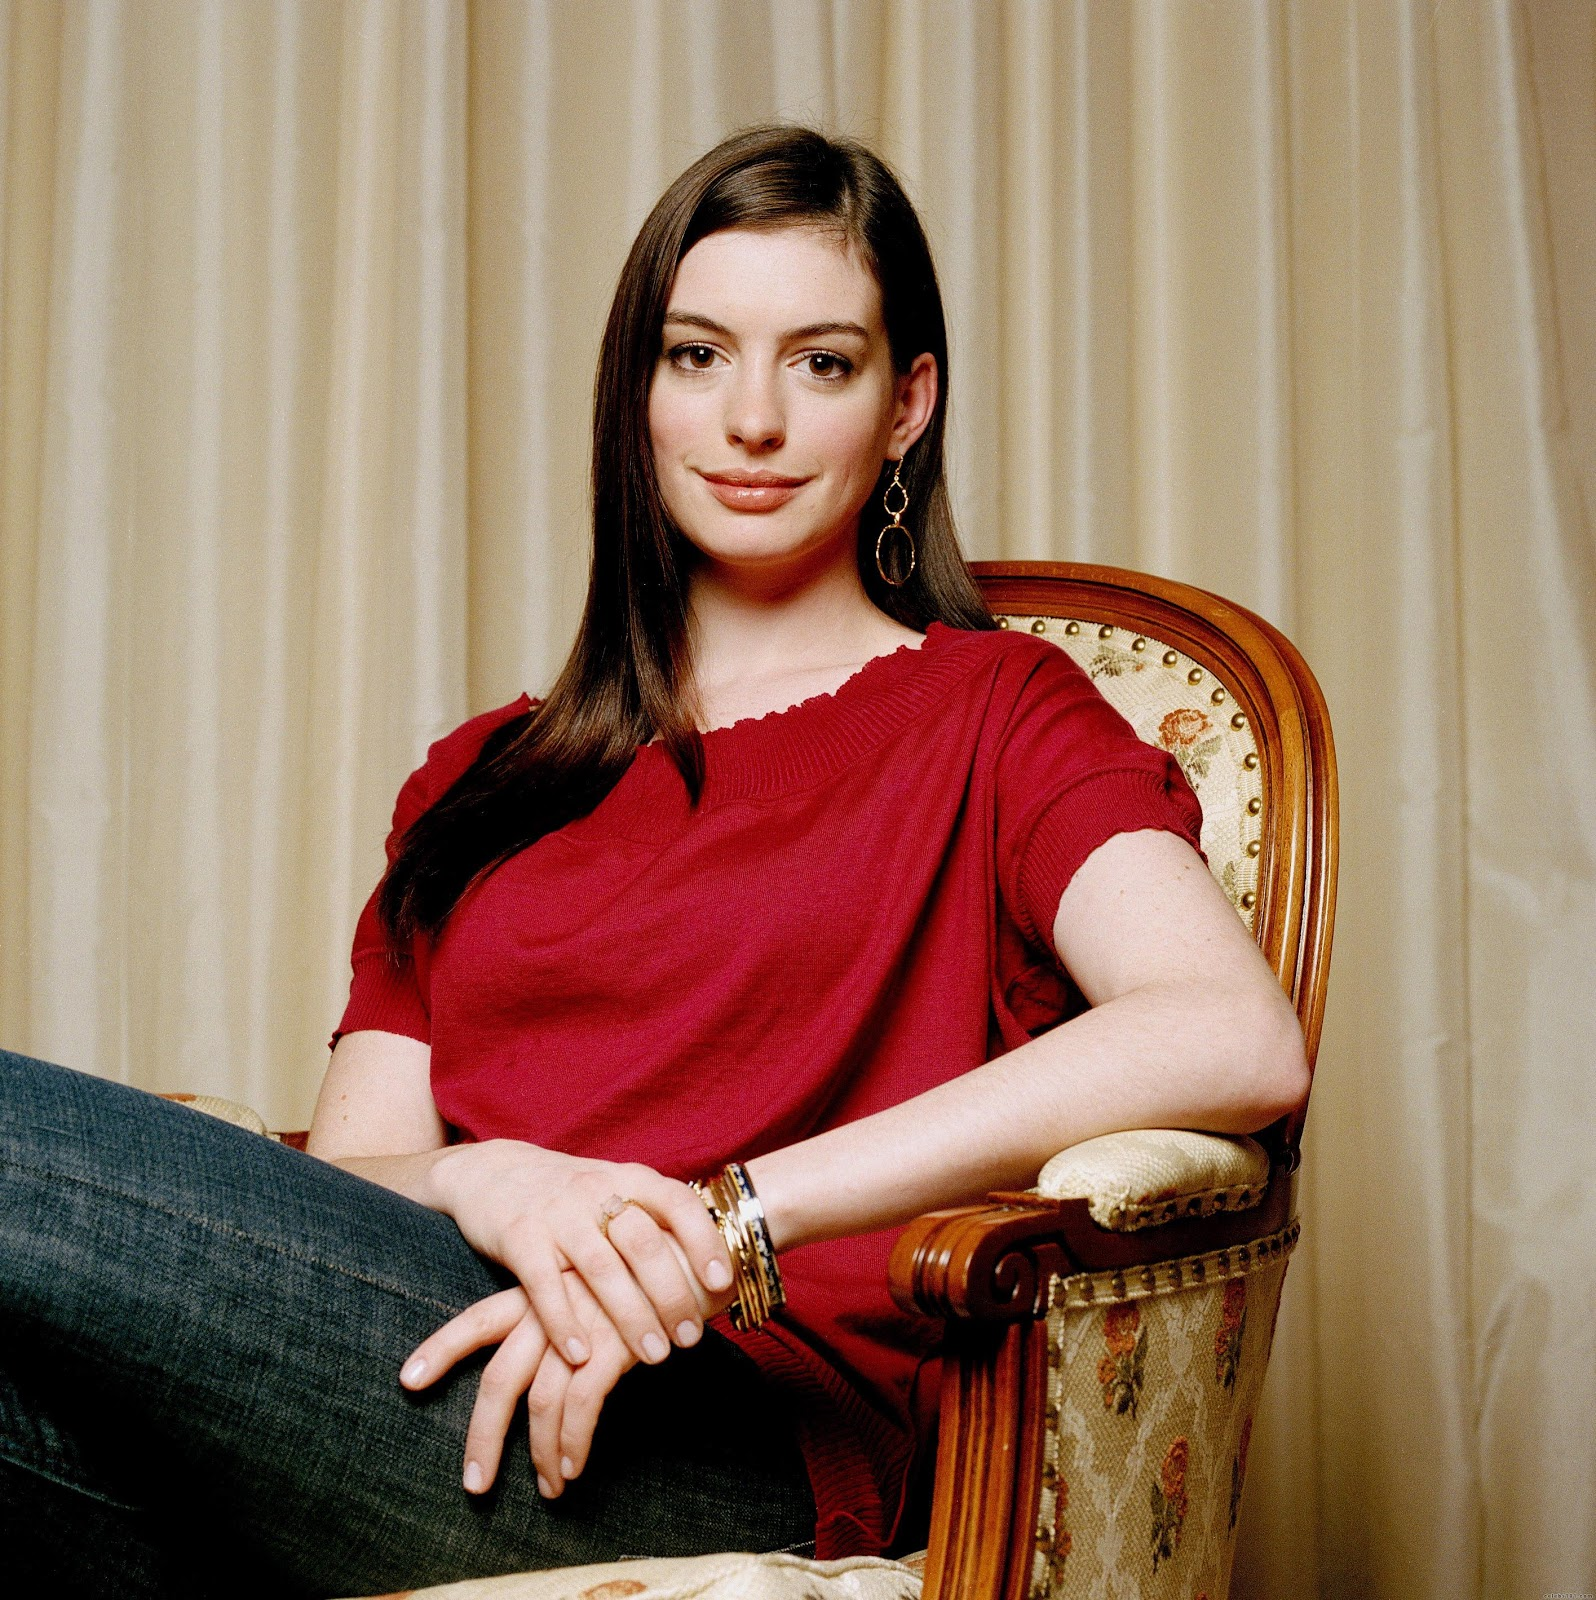 Anne Hathaway Hd Wallpapers High Definition Free